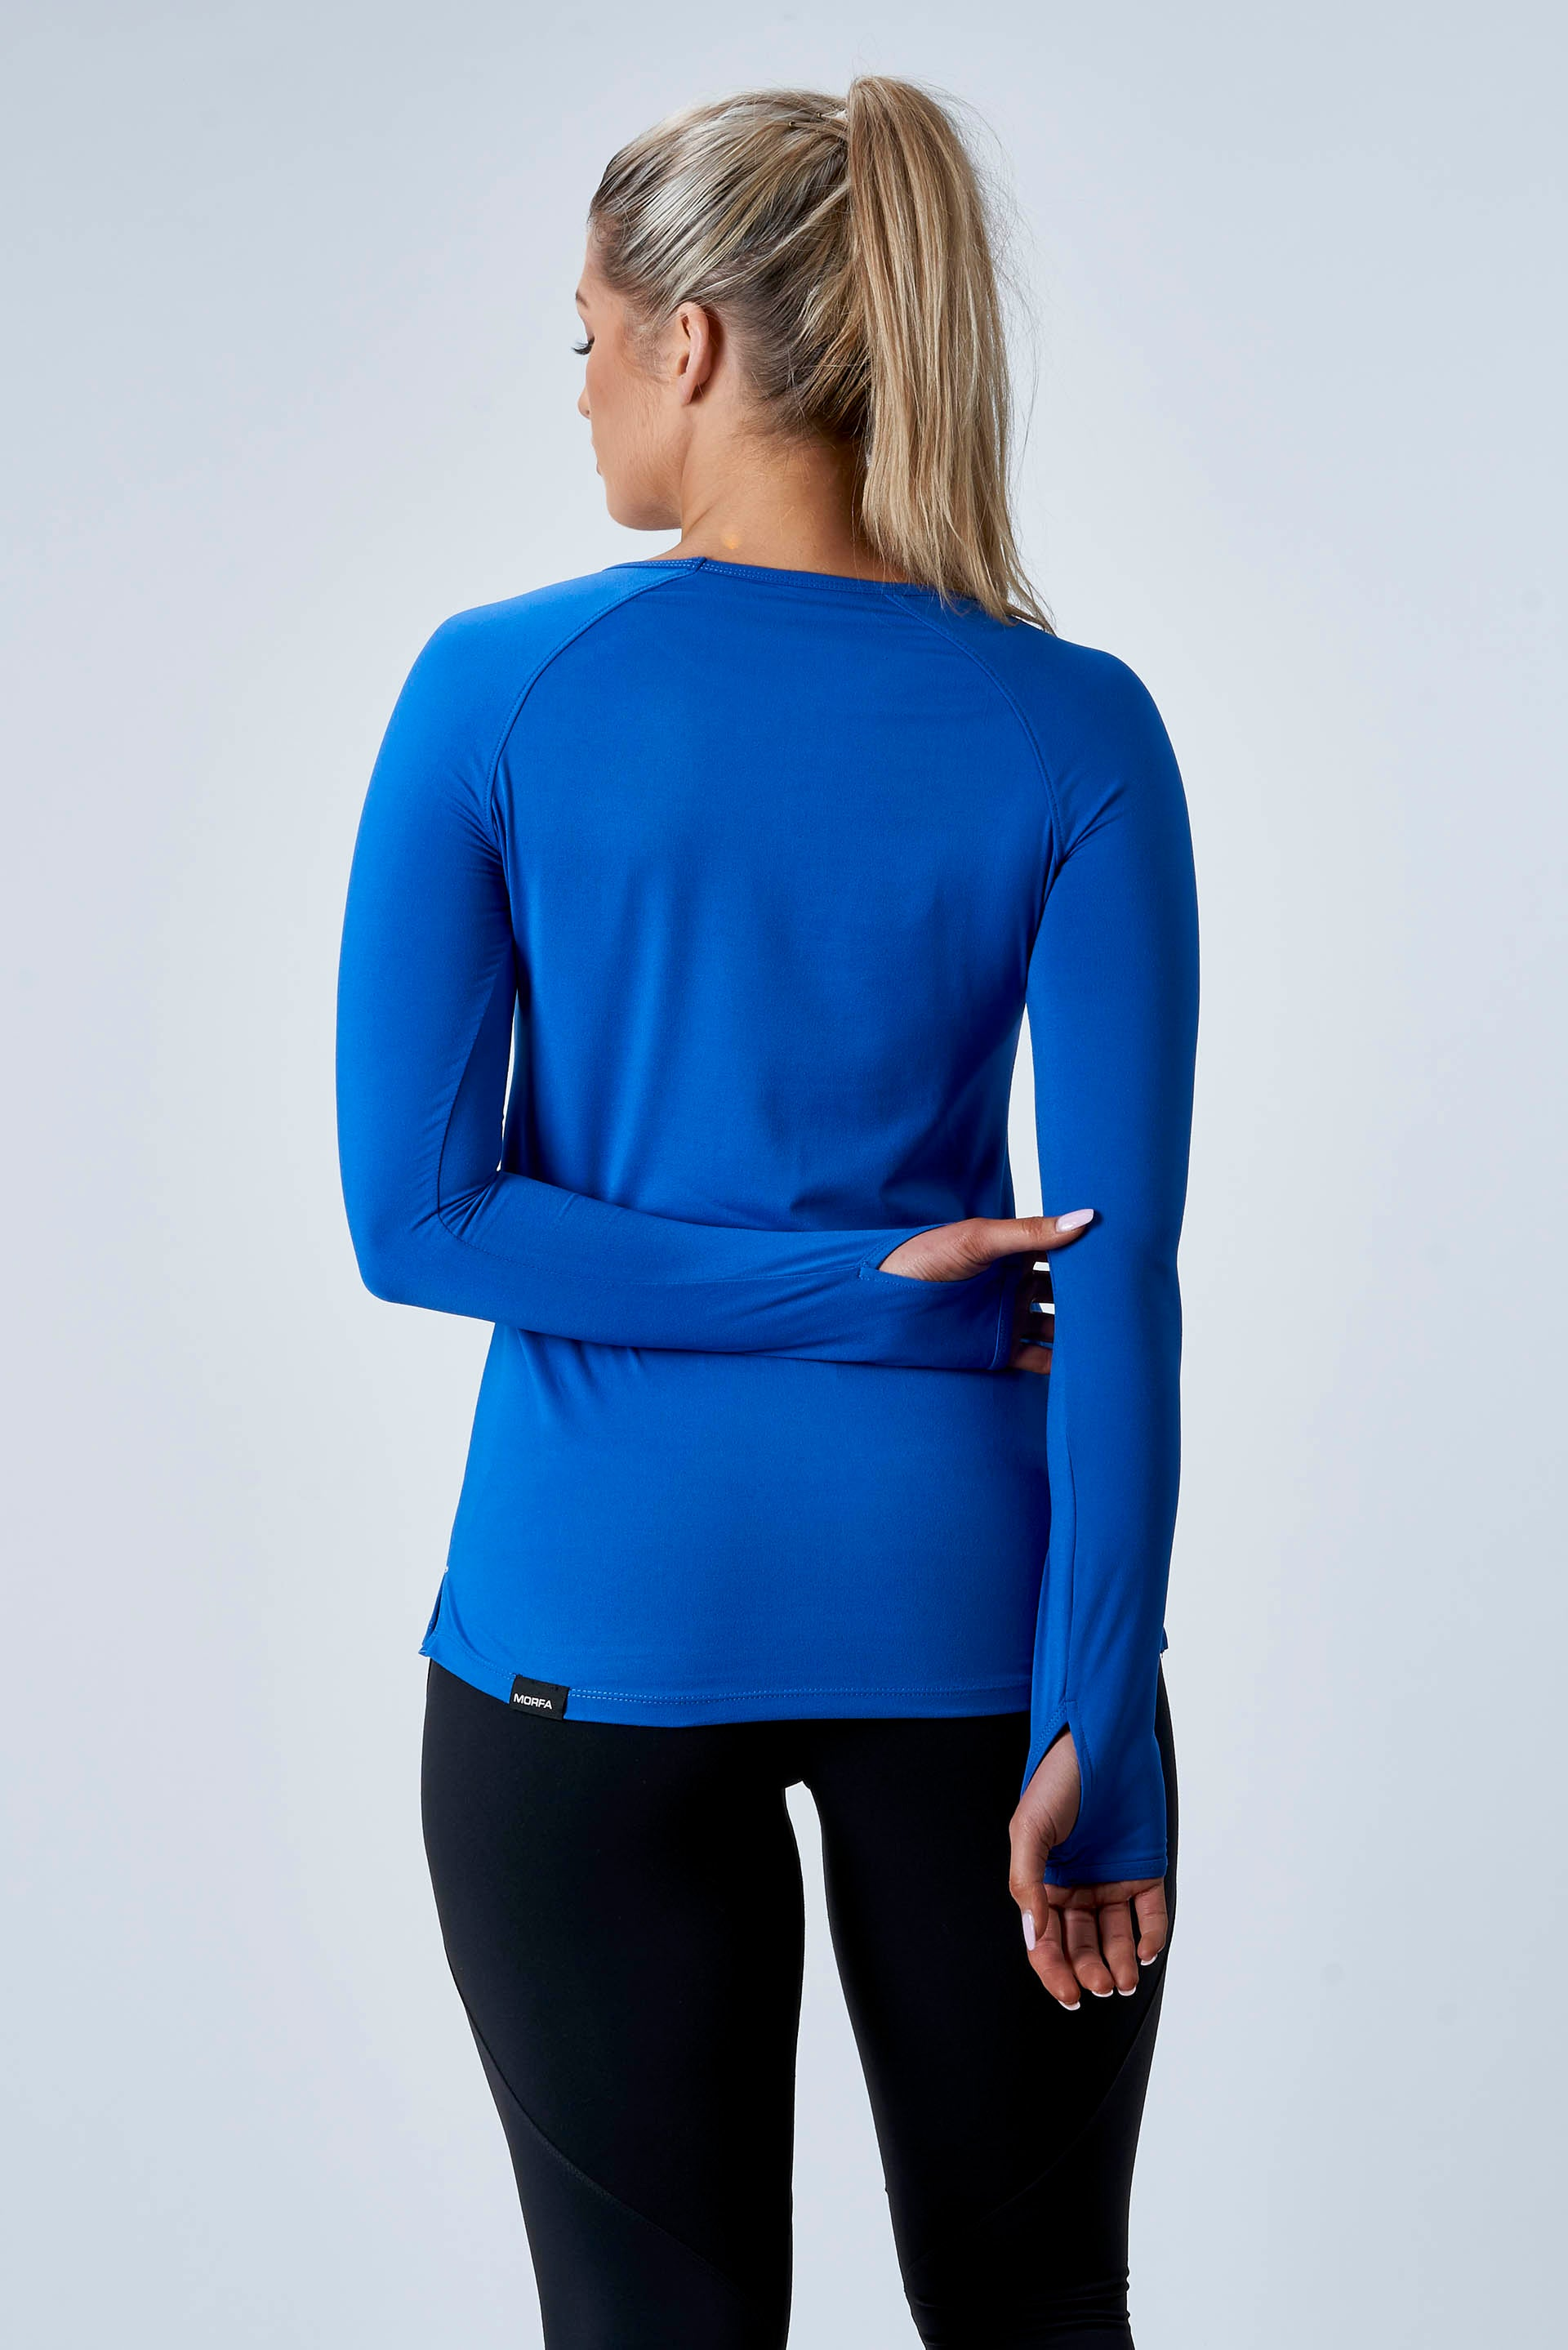 CarbonTech - ATHLETIC L/S - ROYALE